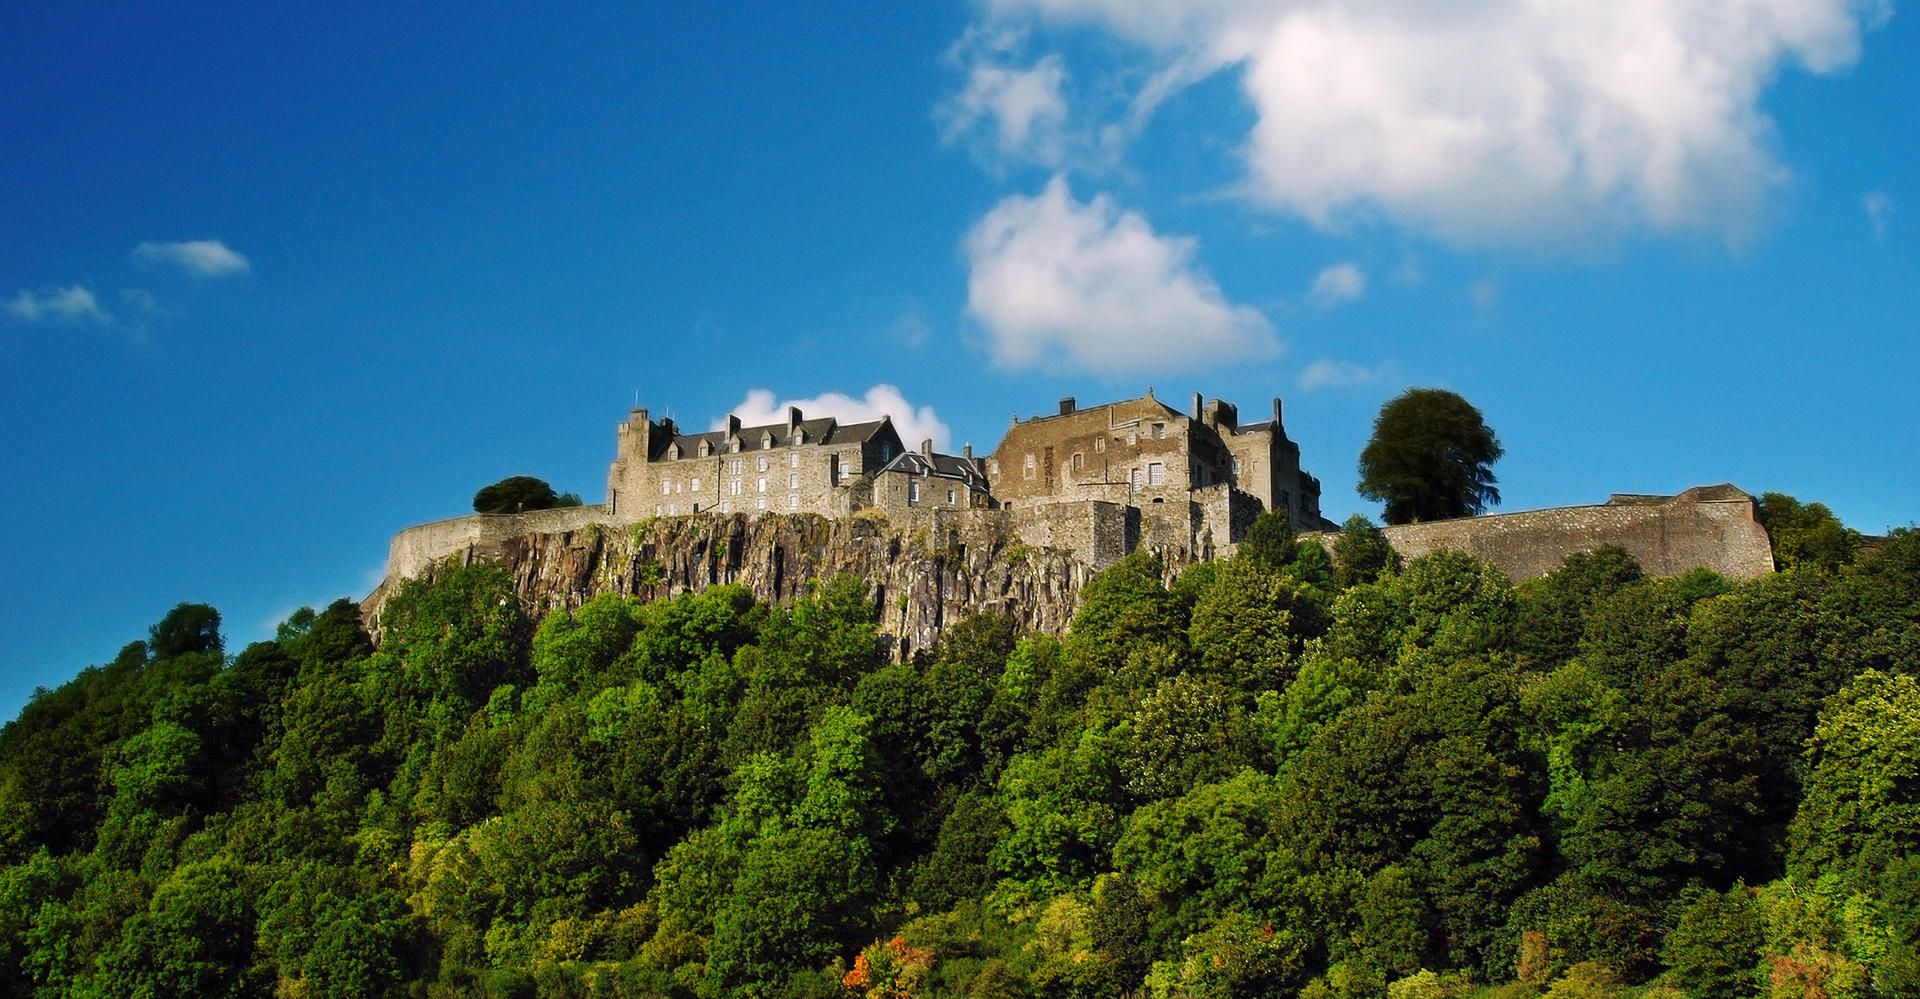 Stirling Castle Scotland from below with blue sky sunny day